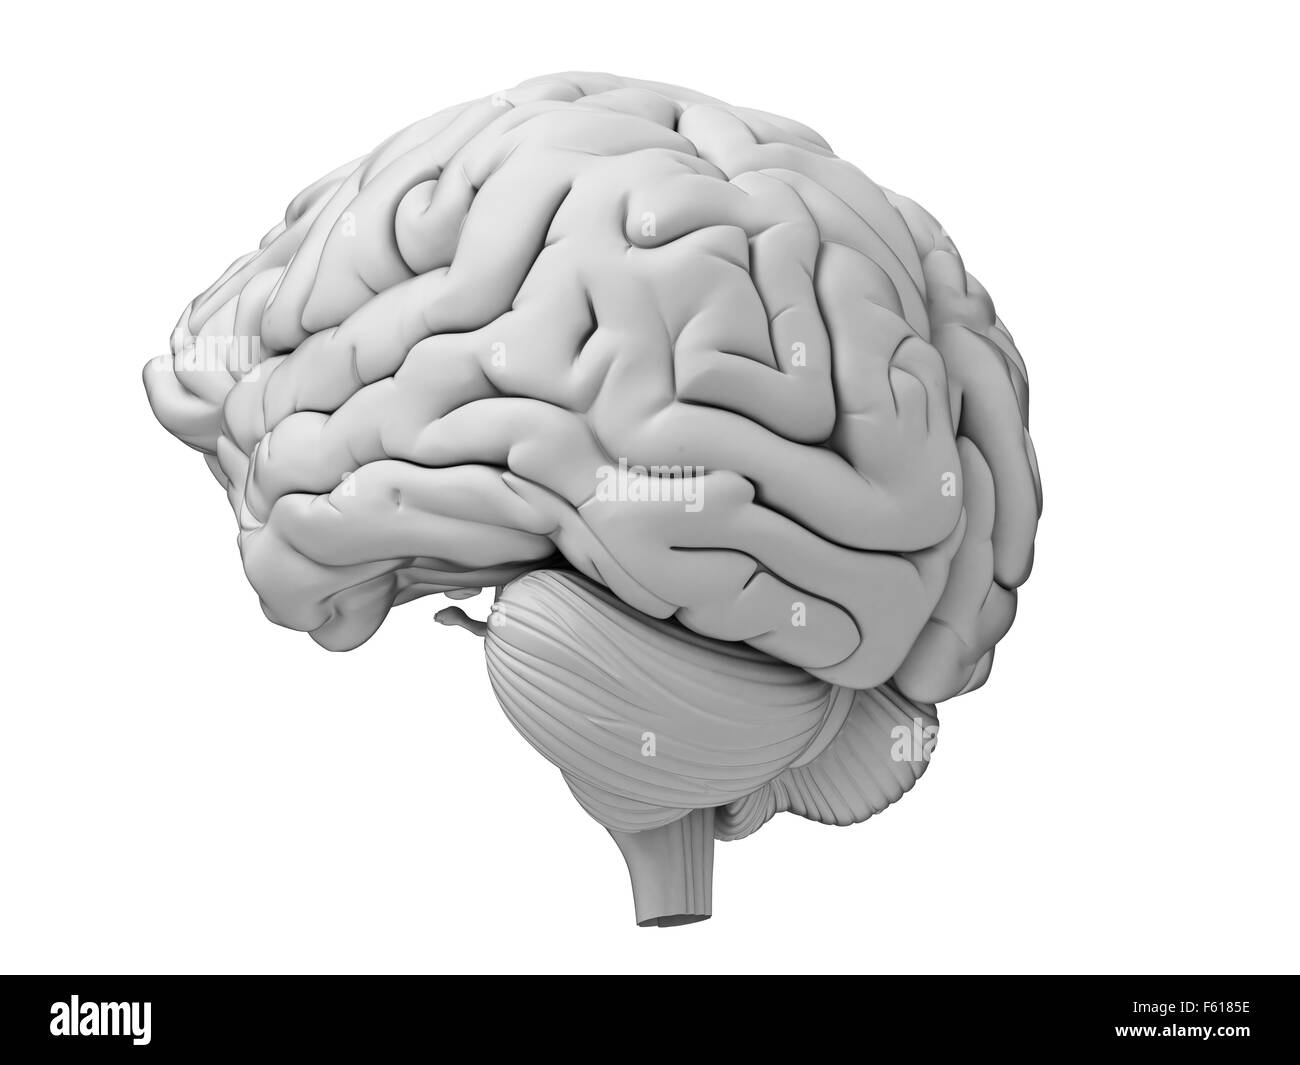 medically accurate illustration of the human brain - Stock Image